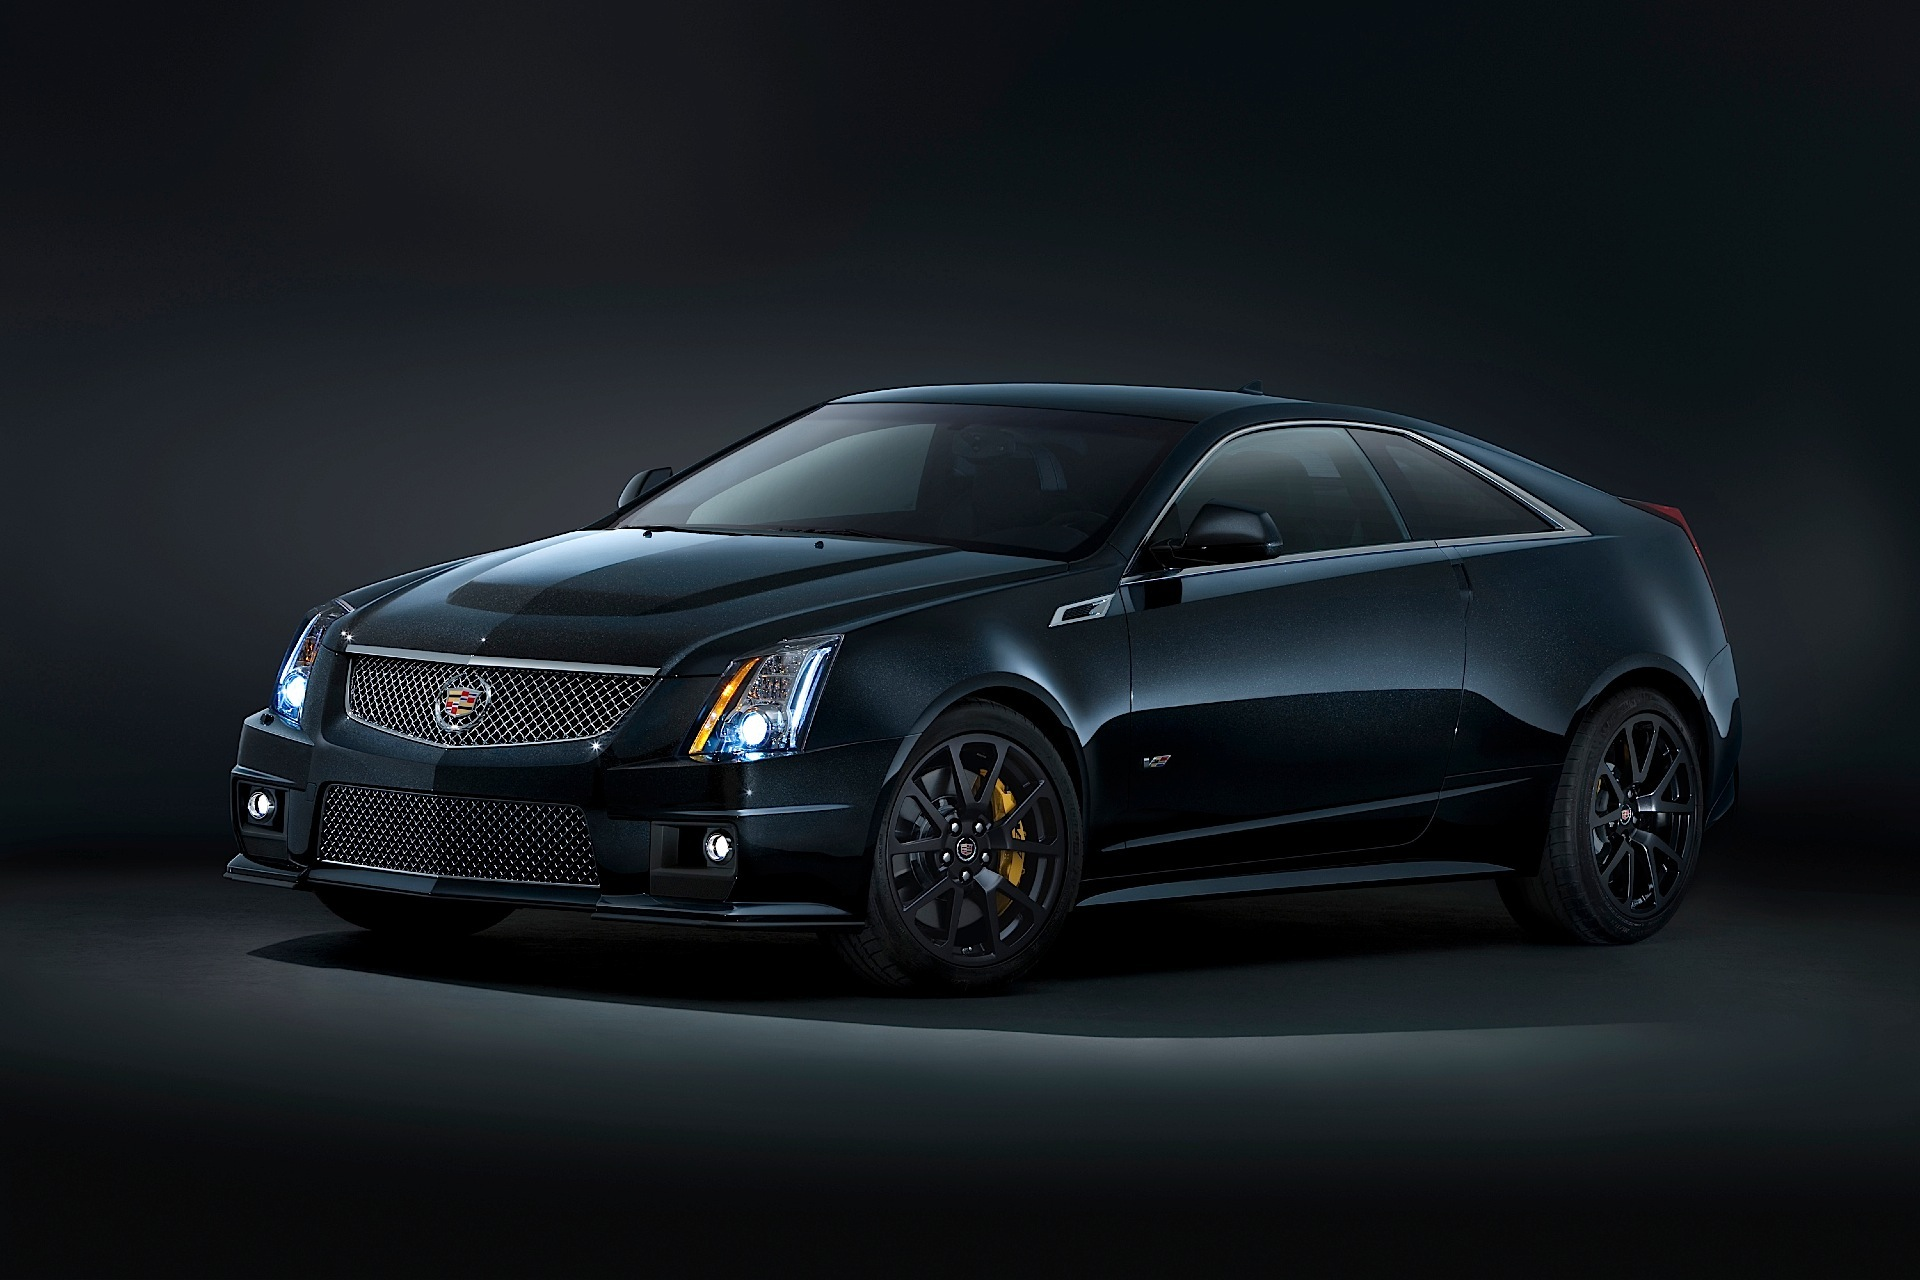 cadillac cts v coupe specs photos 2012 2013 2014 2015 2016 2017 2018 2019 autoevolution. Black Bedroom Furniture Sets. Home Design Ideas